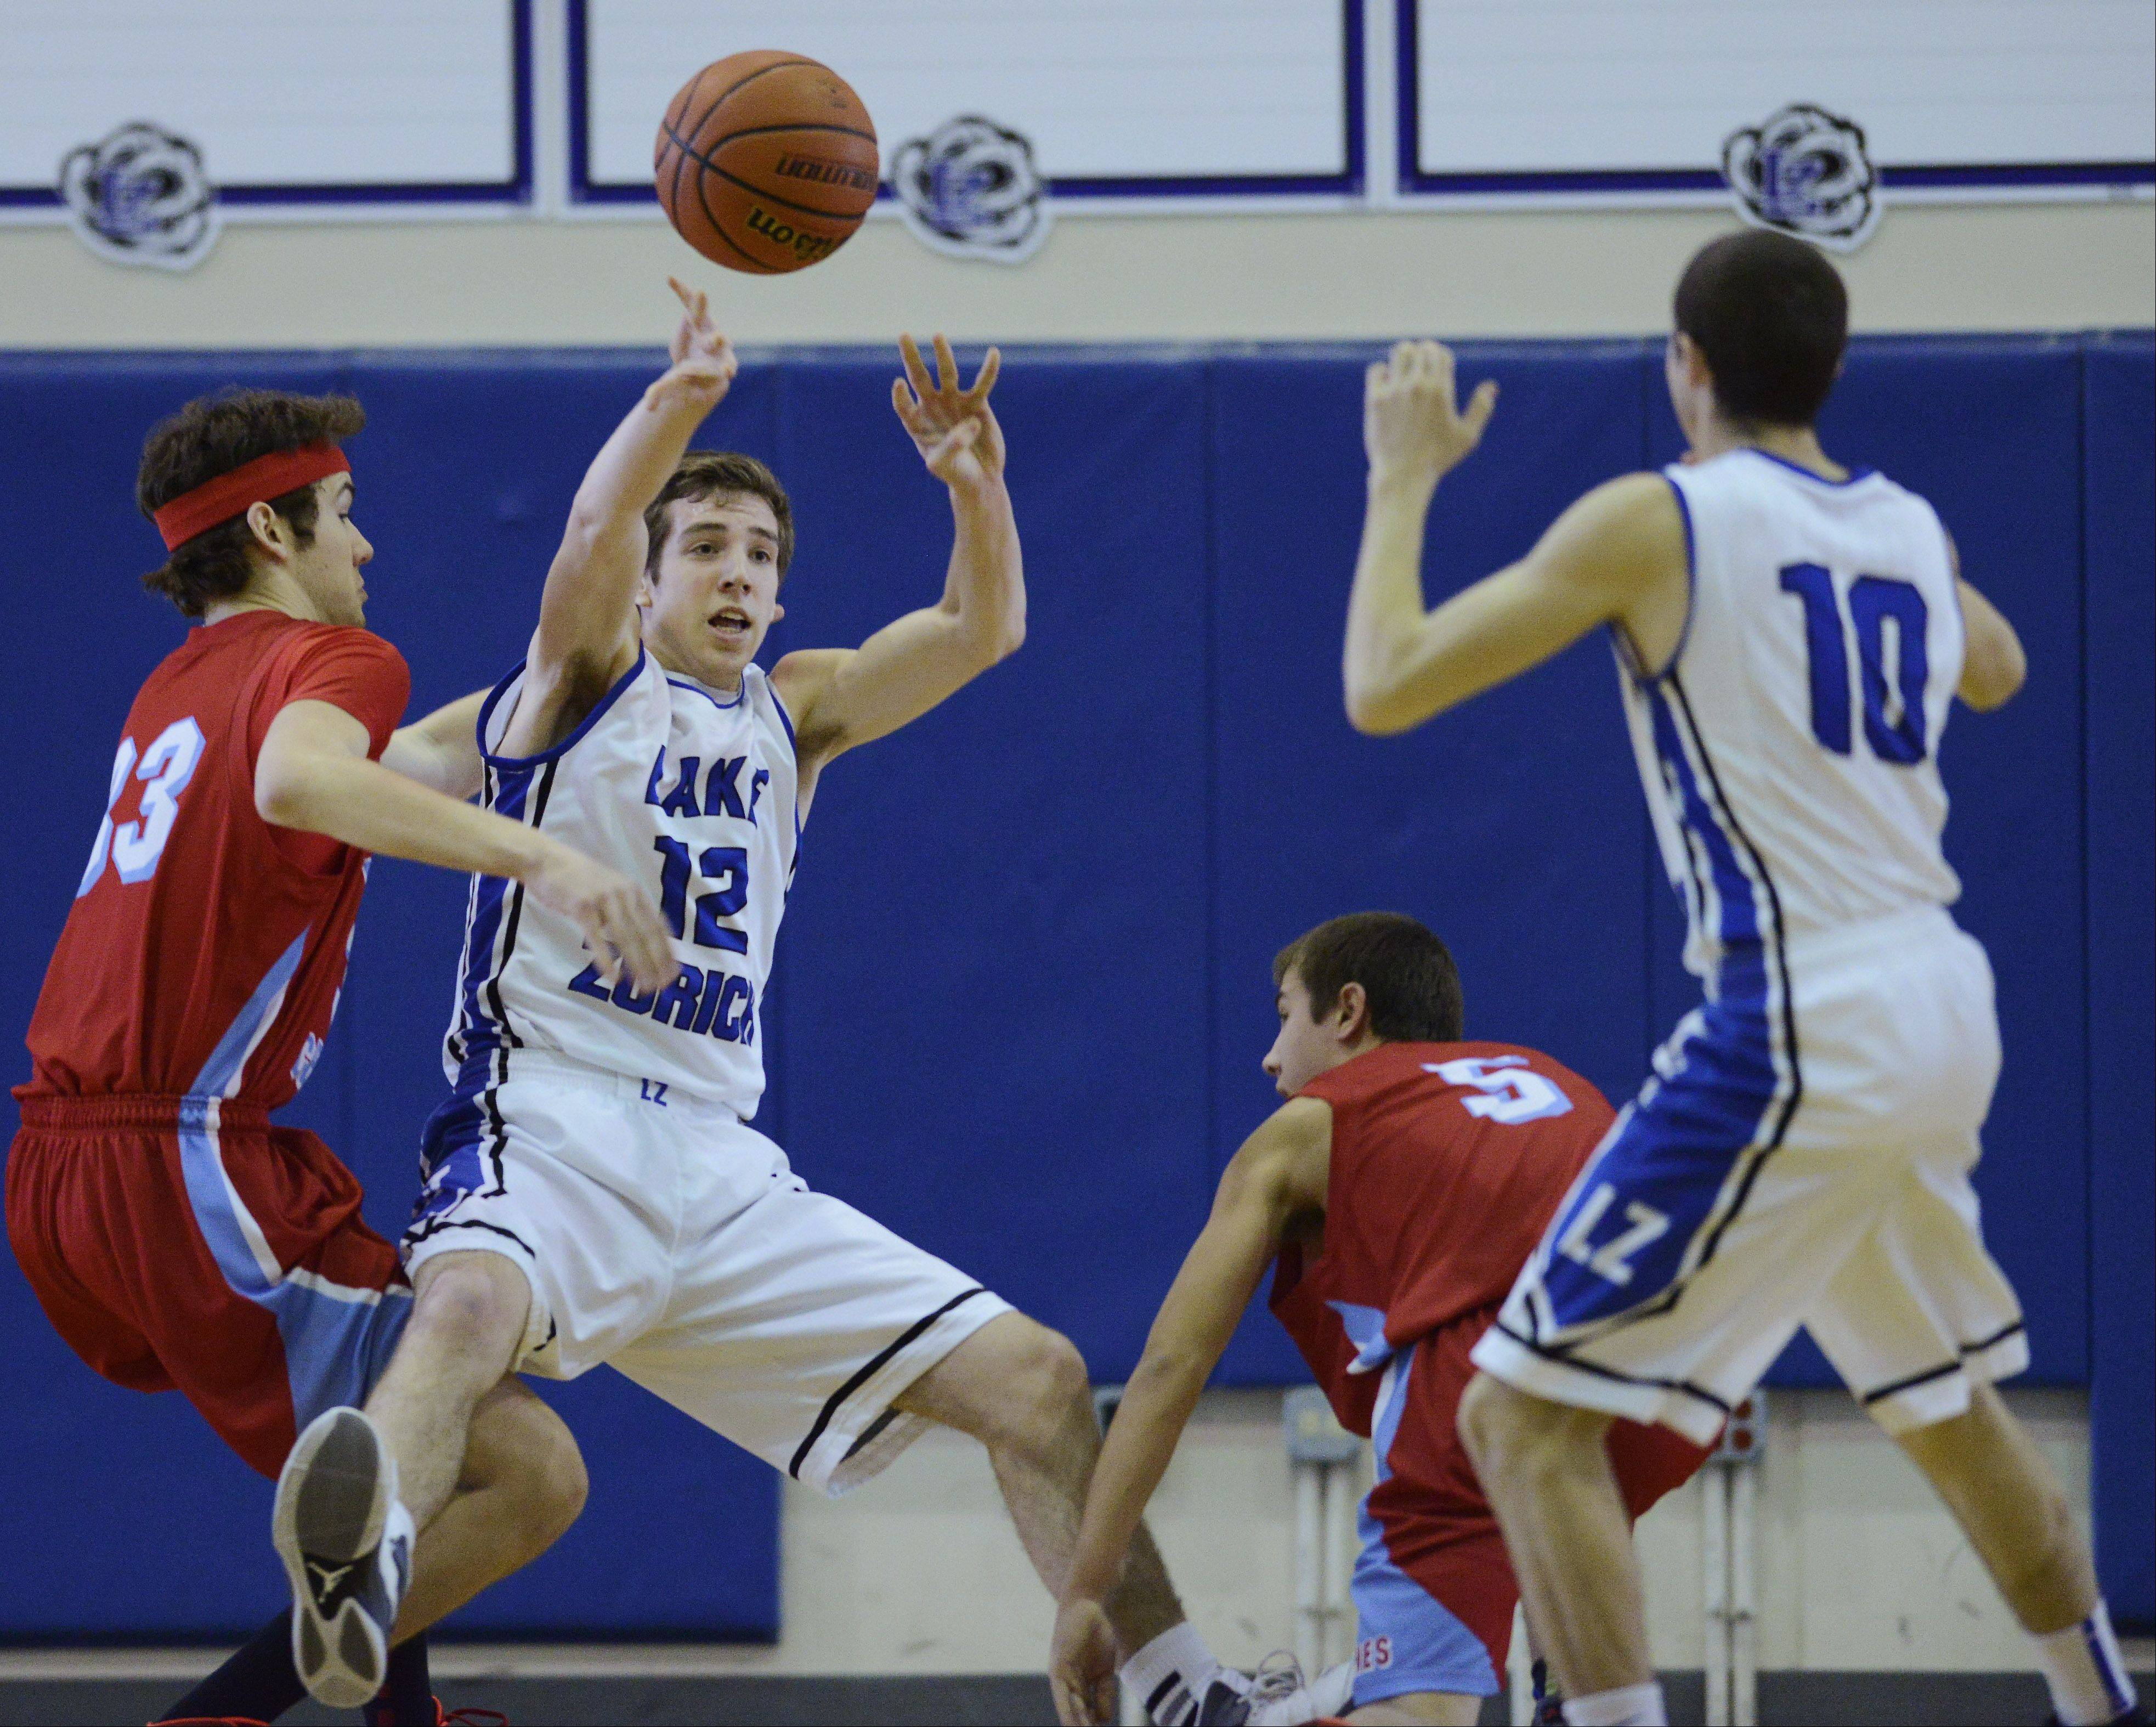 Lake Zurich�s Corey Helgeson, second from left, passes the ball to teammate Dave Brown, right, after grabbing a loose ball between Marian Central�s Quinn Haley, left, and Adam Pischke during the Martin Luther King Classic at Lake Zurich Saturday.